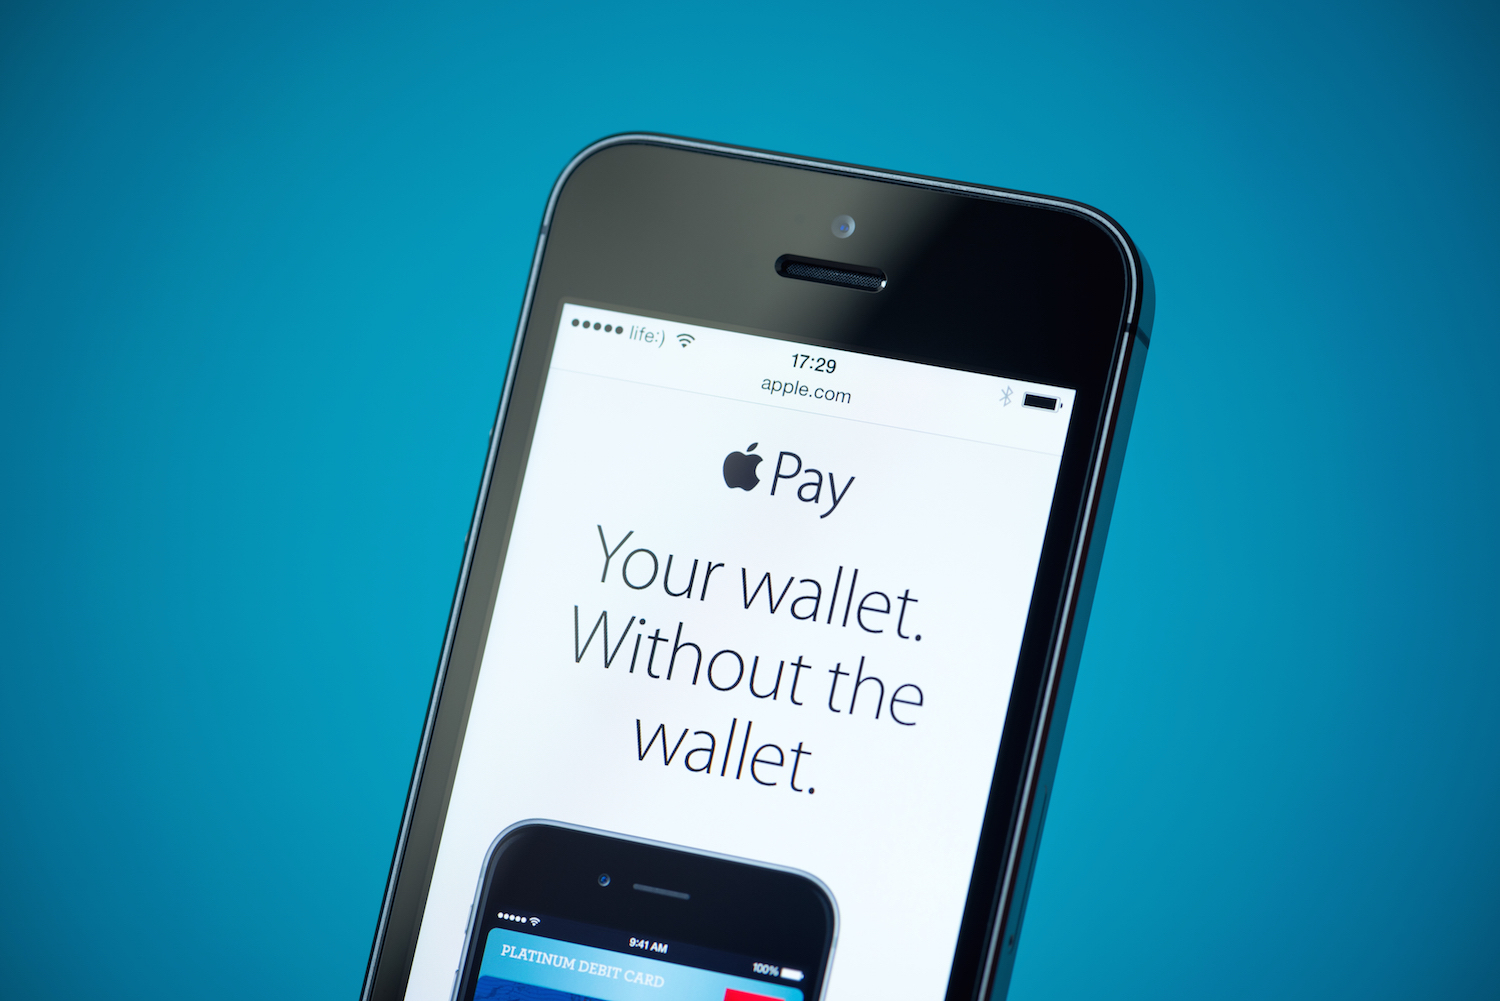 Apple Pay Announce On Apple Iphone 5S